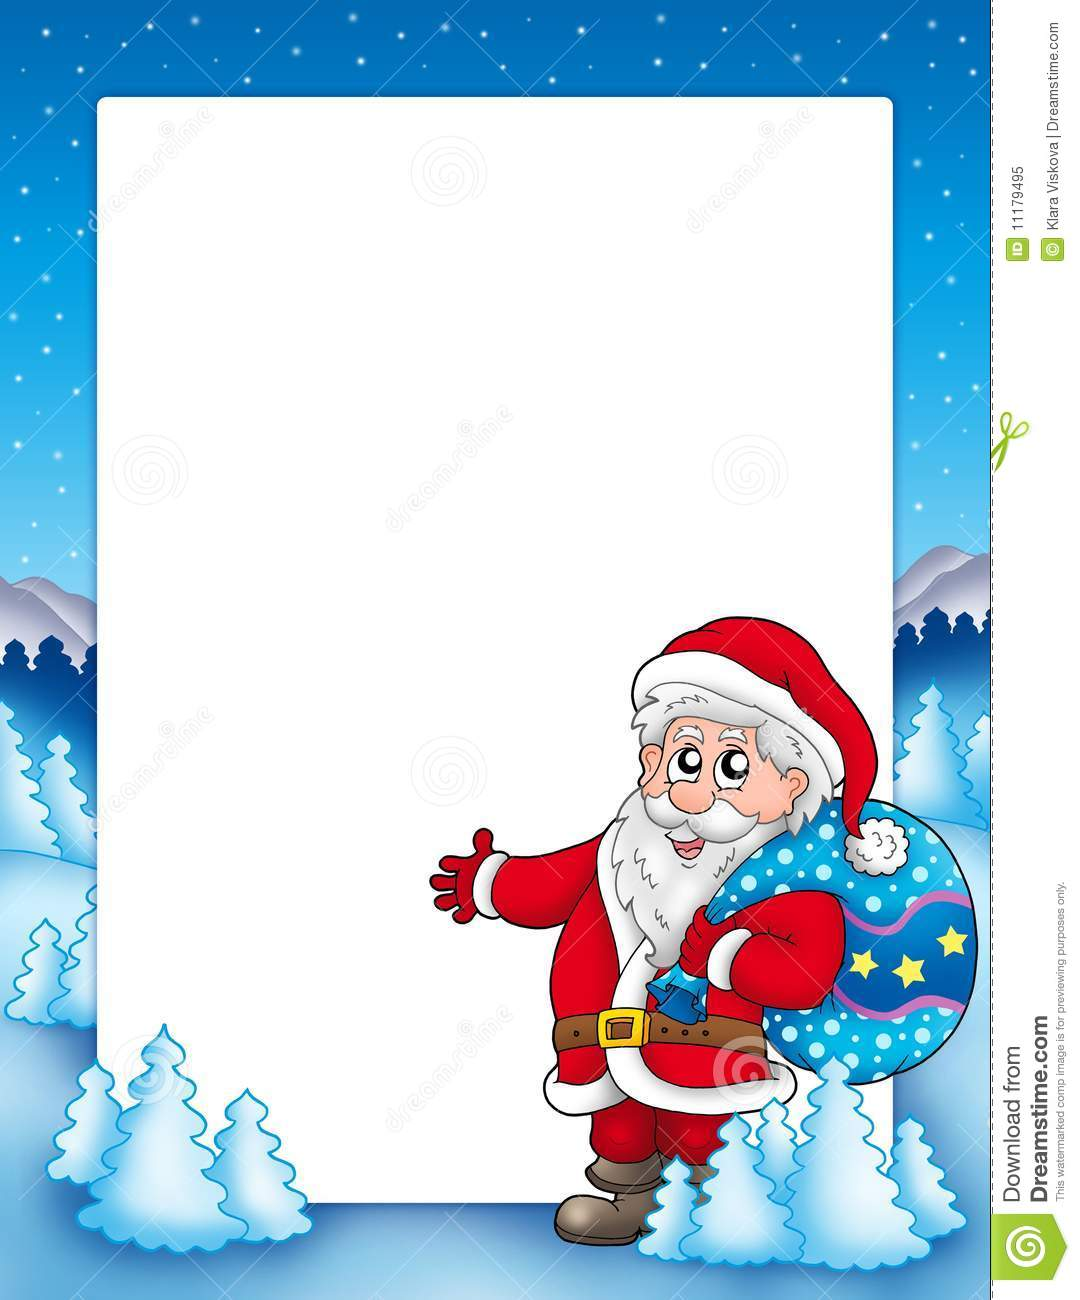 christmas frame with santa claus 1 royalty free stock